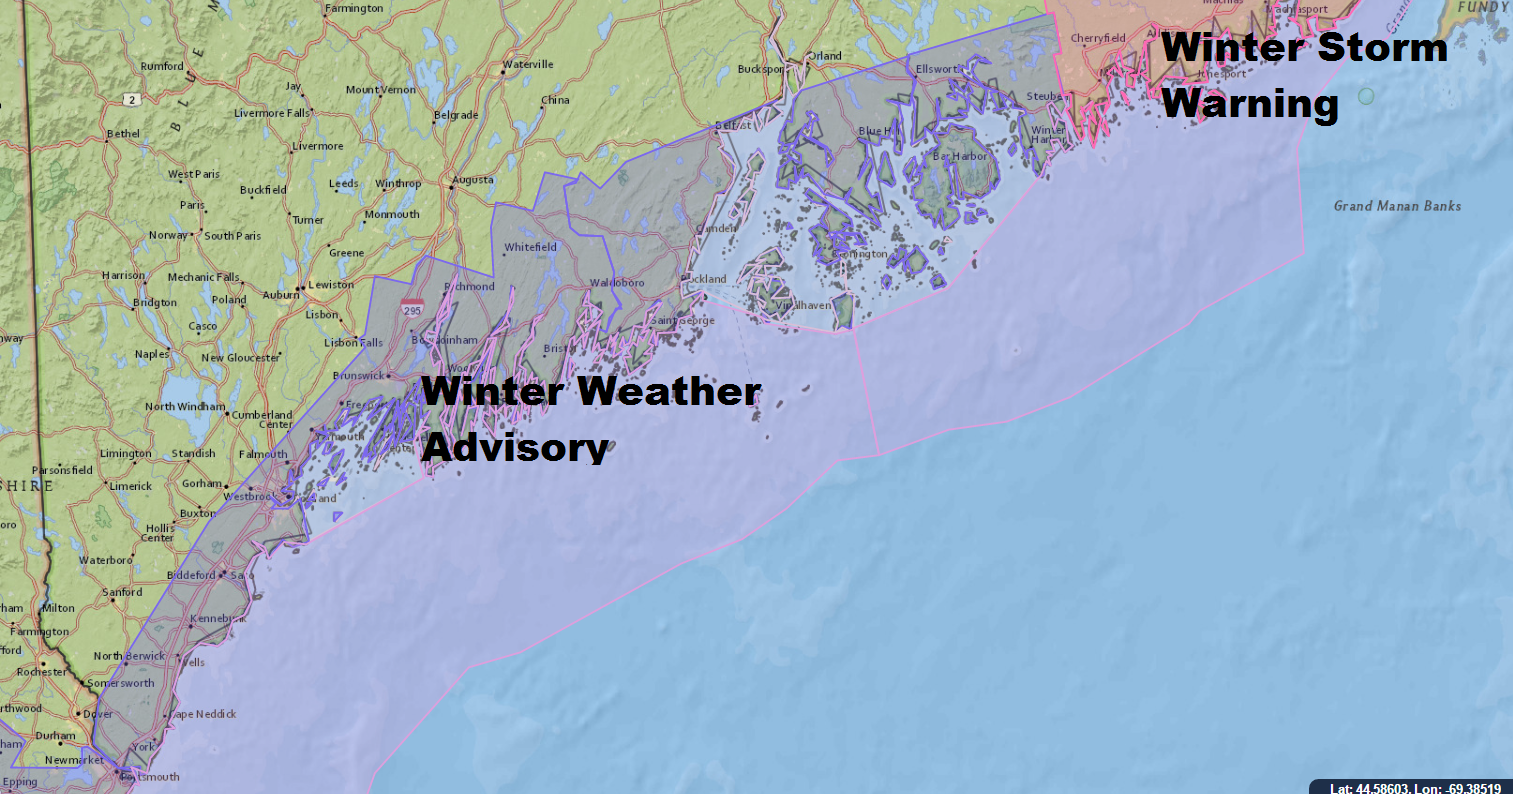 Winter Weather Advisories Due To Snow Are Posted Along The Coast Of Maine